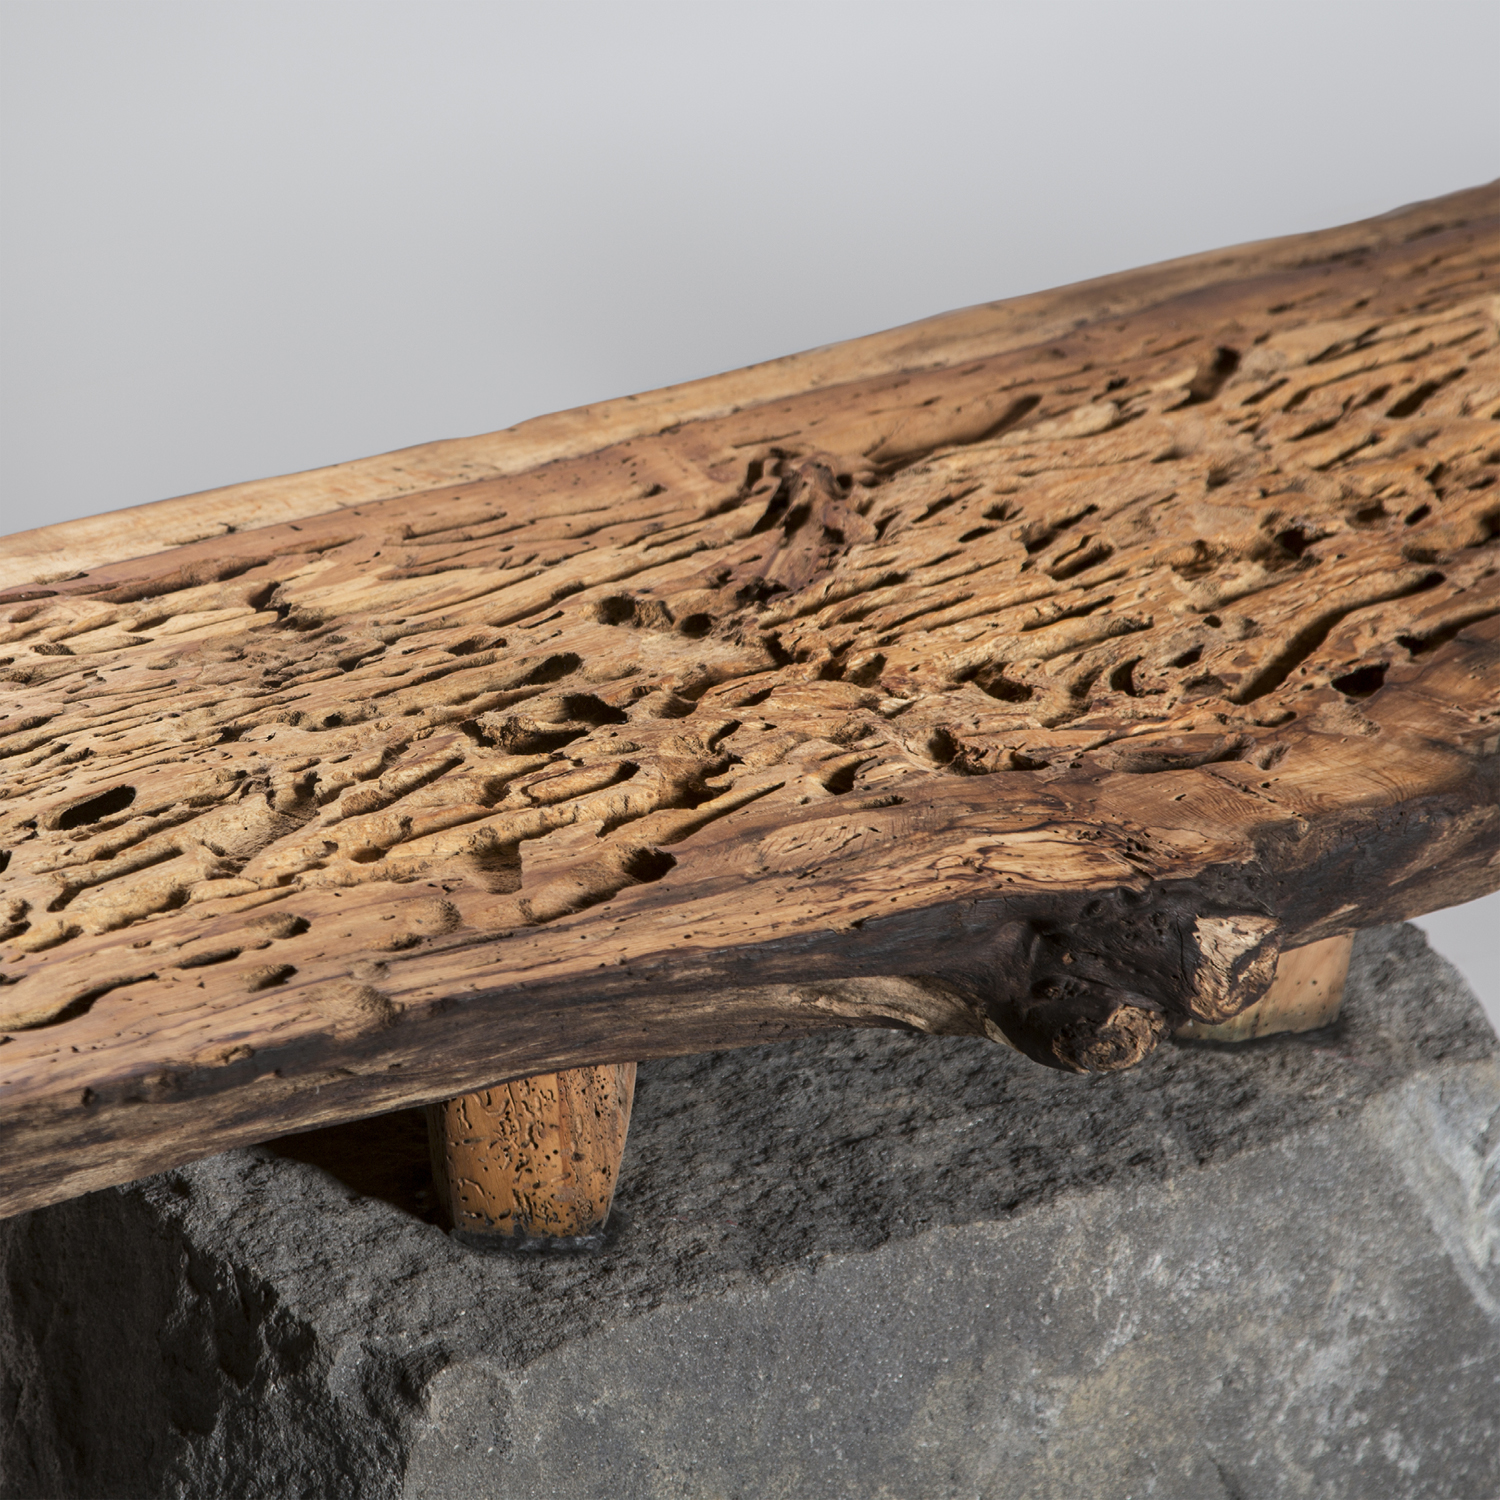 bench-salvaged-mexican-alder-wood-basalt-recinto-with-feet-shi-ho-julio-martinez-marion-friedmann-gallery-24-lr.jpg